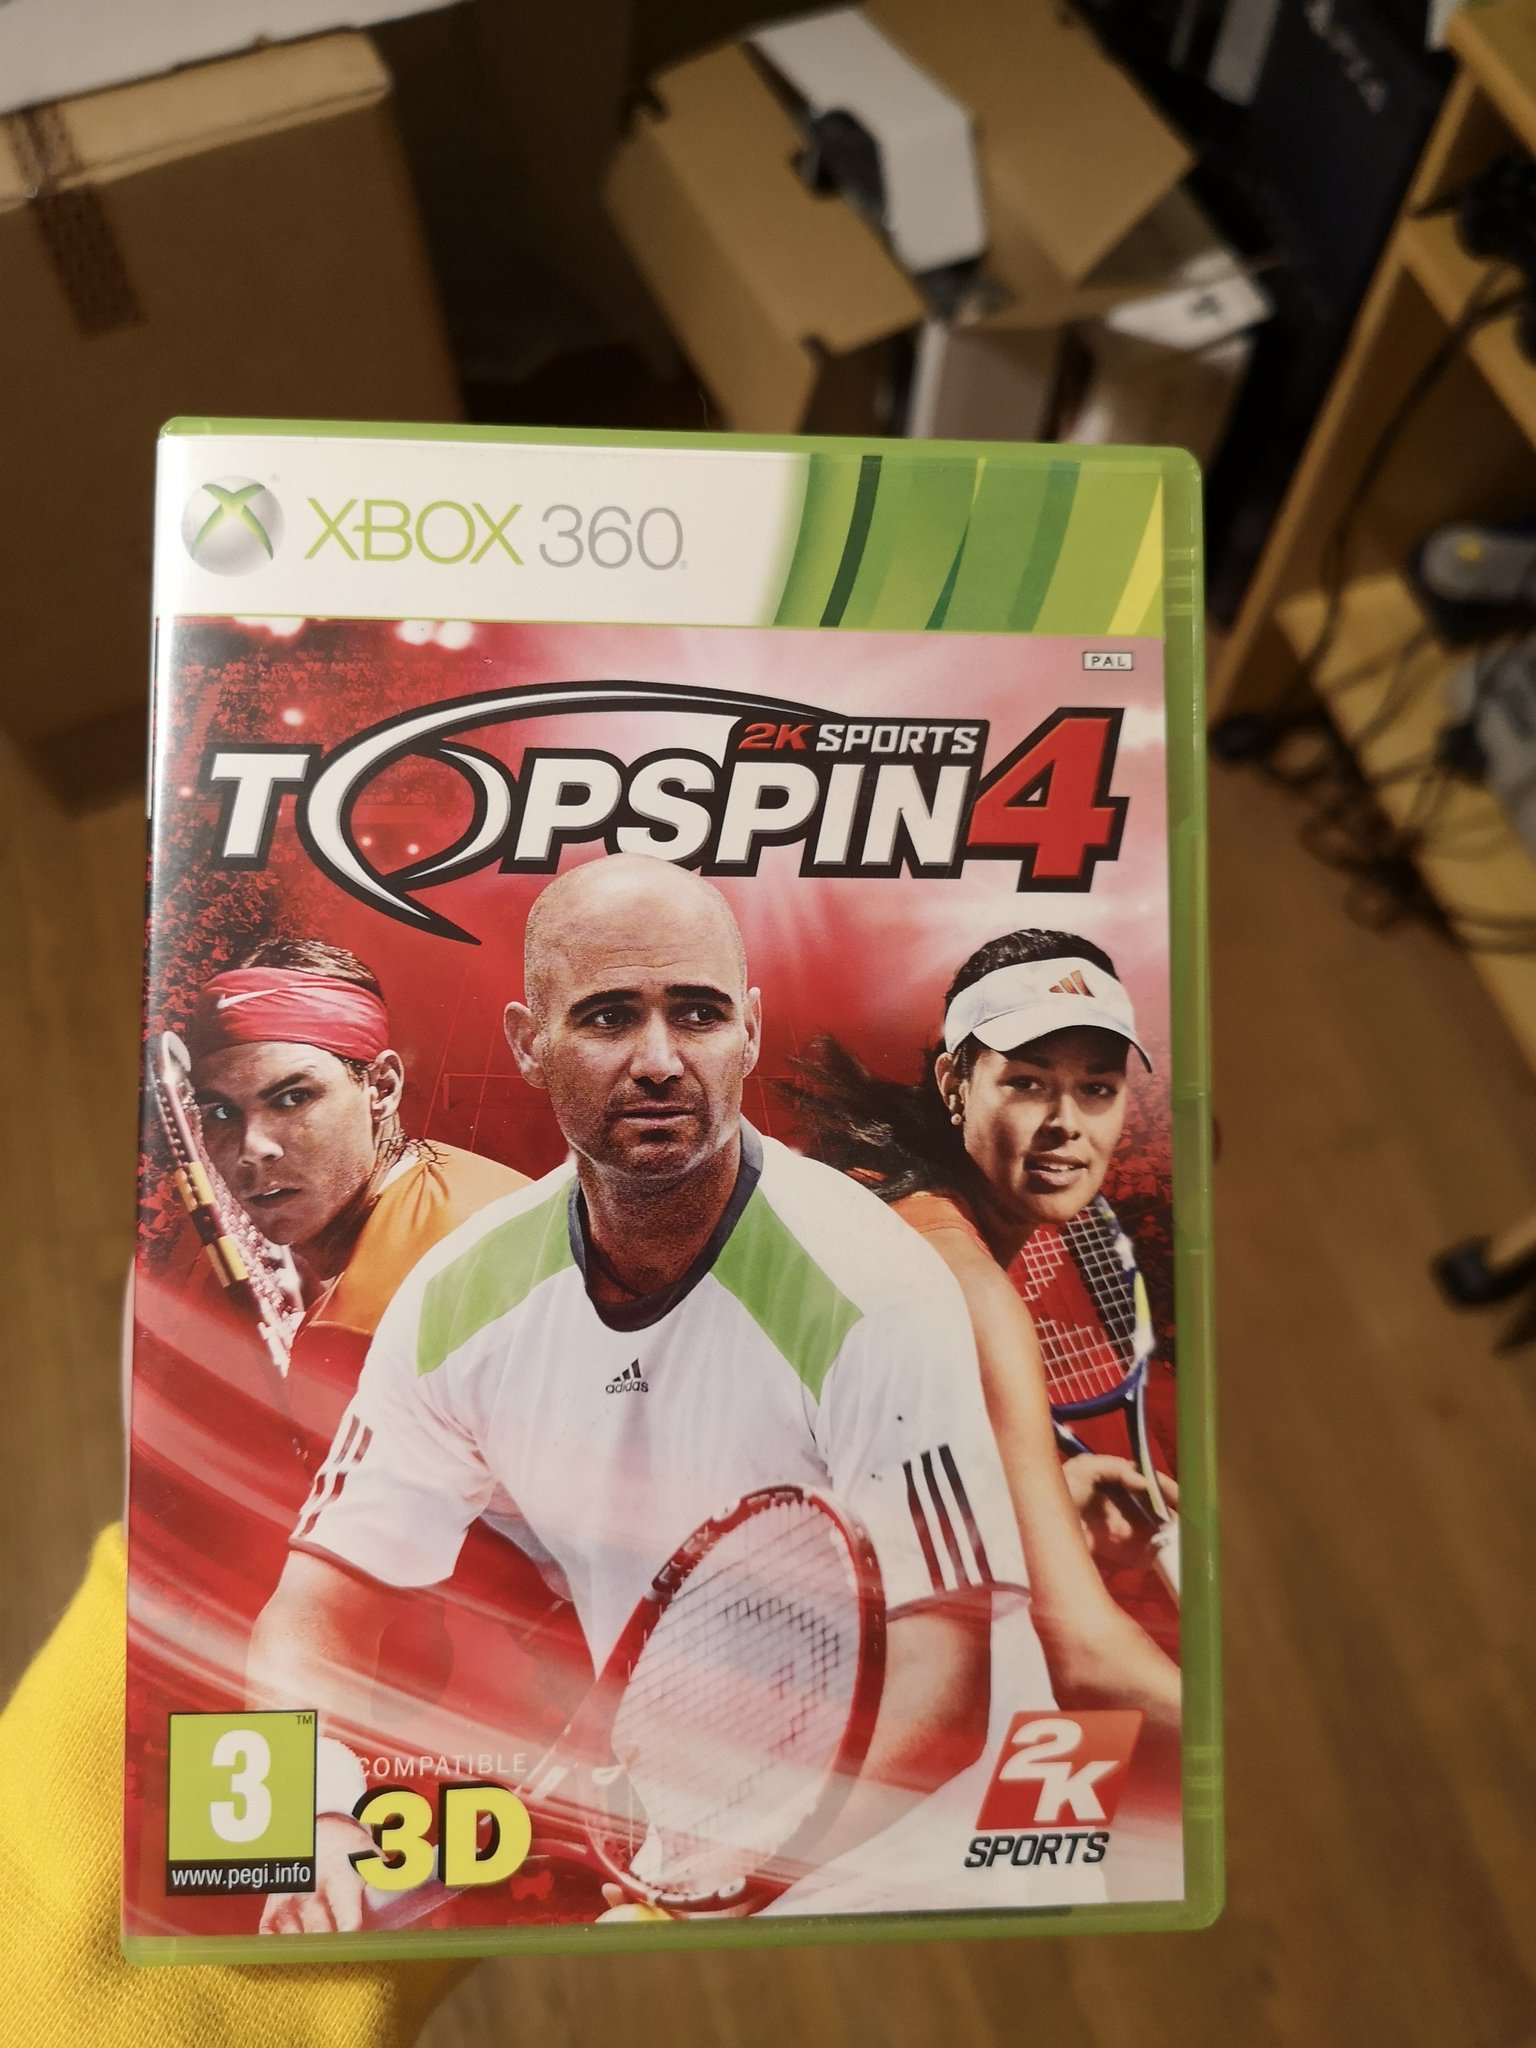 [ VDS ] Jeux Xbox 360 EPeQU7OX4AIcOul?format=jpg&name=4096x4096